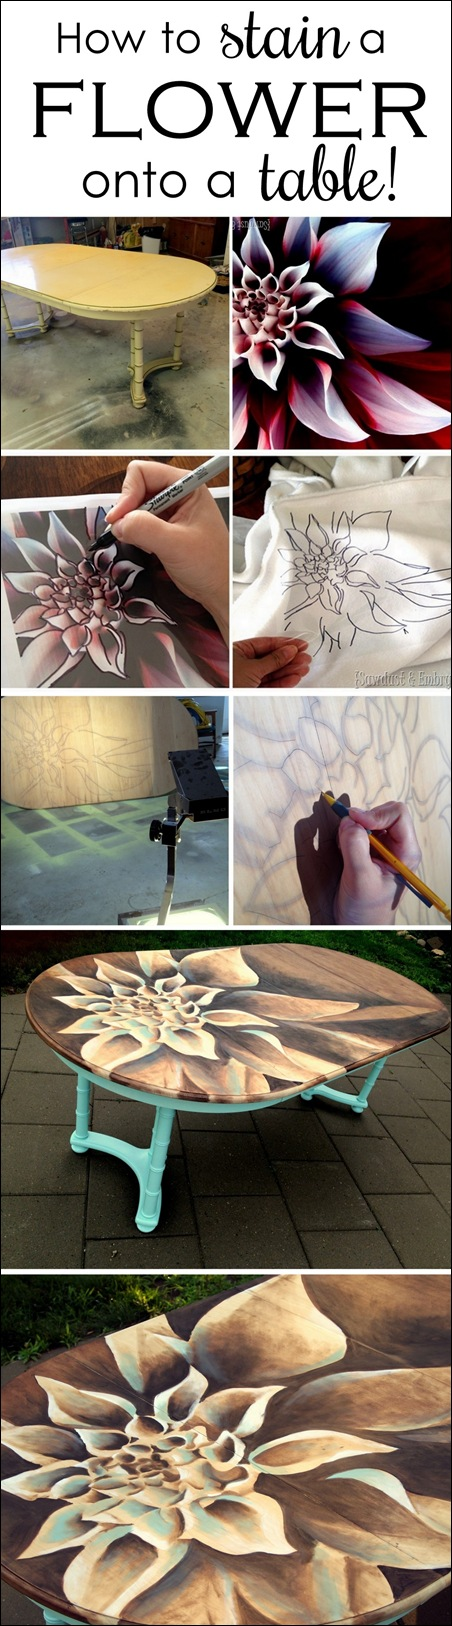 How to stain a flower onto a table - by Sawdust & Embryos